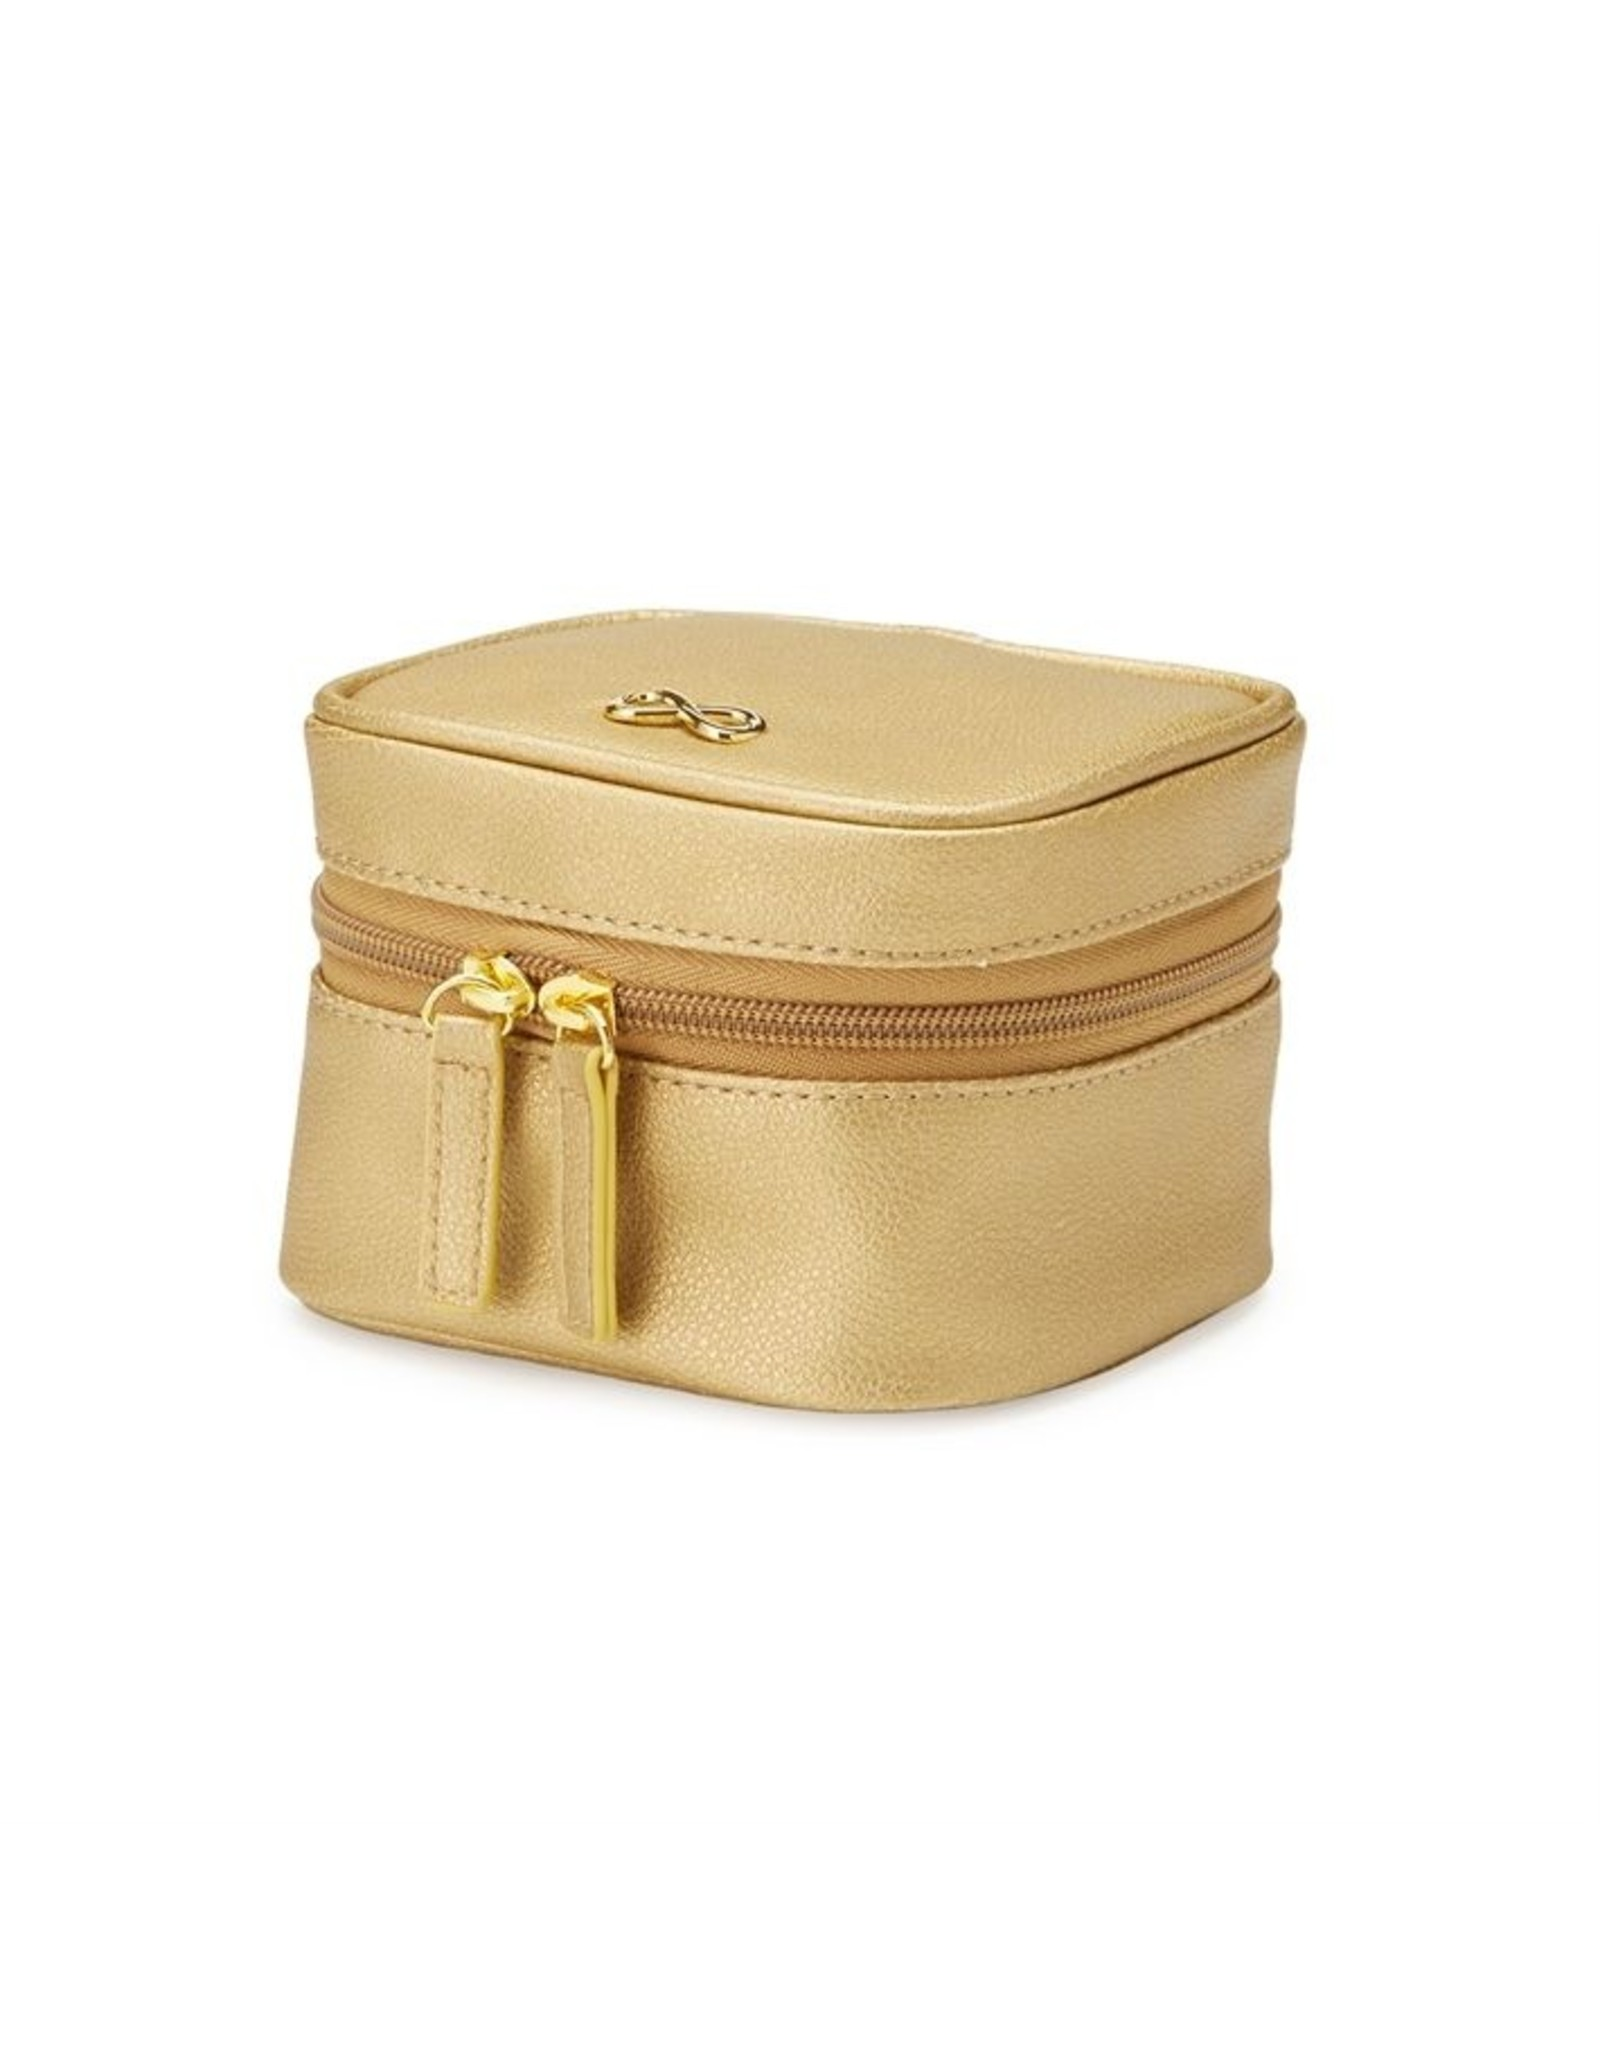 Two's Company Inc. Vegan Leather Jewelry Box - Gold